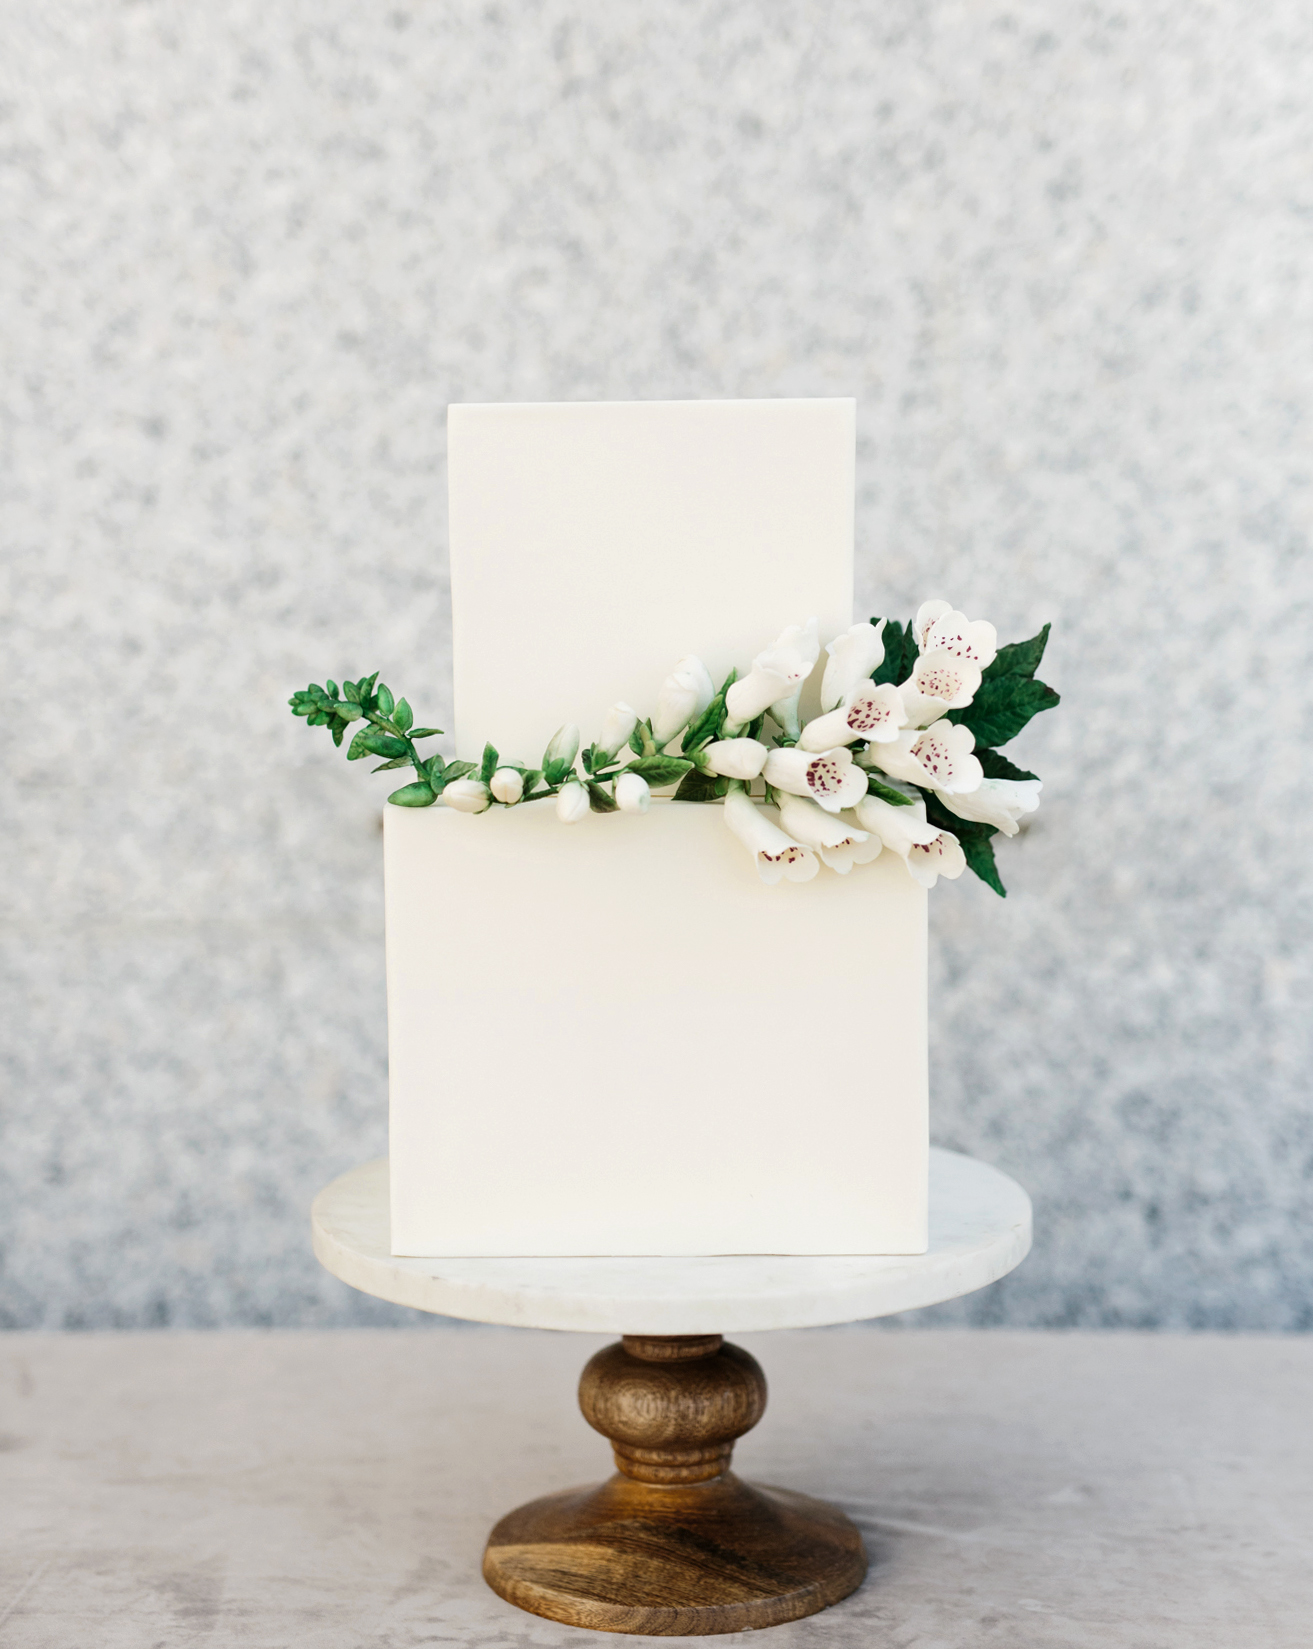 cubed wedding floral arrangement on simple white cake